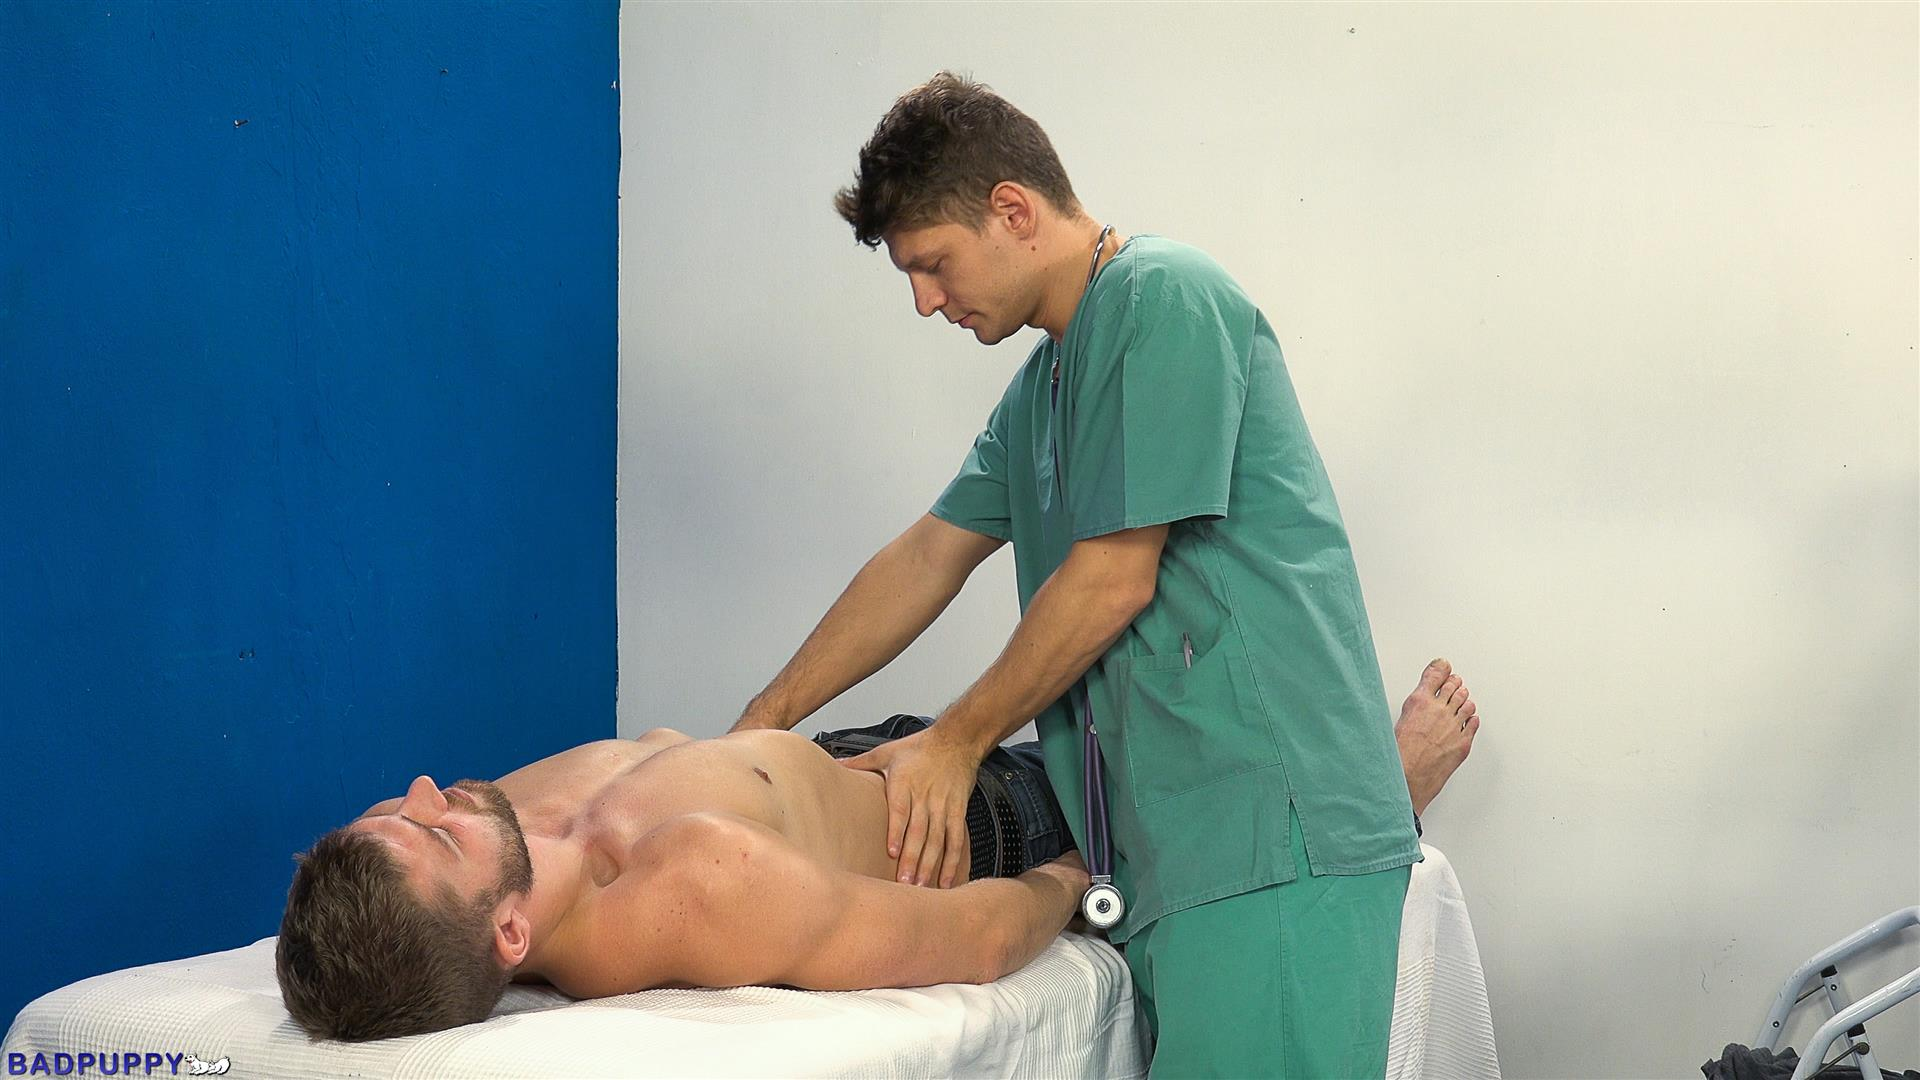 Badpuppy-Nikol-Monak-and-Rosta-Benecky-Czech-Guys-Fucking-Bareback-Amateur-Gay-Porn-04 Czech Hunks With Big Uncut Cocks Fucking At The Doctors Office